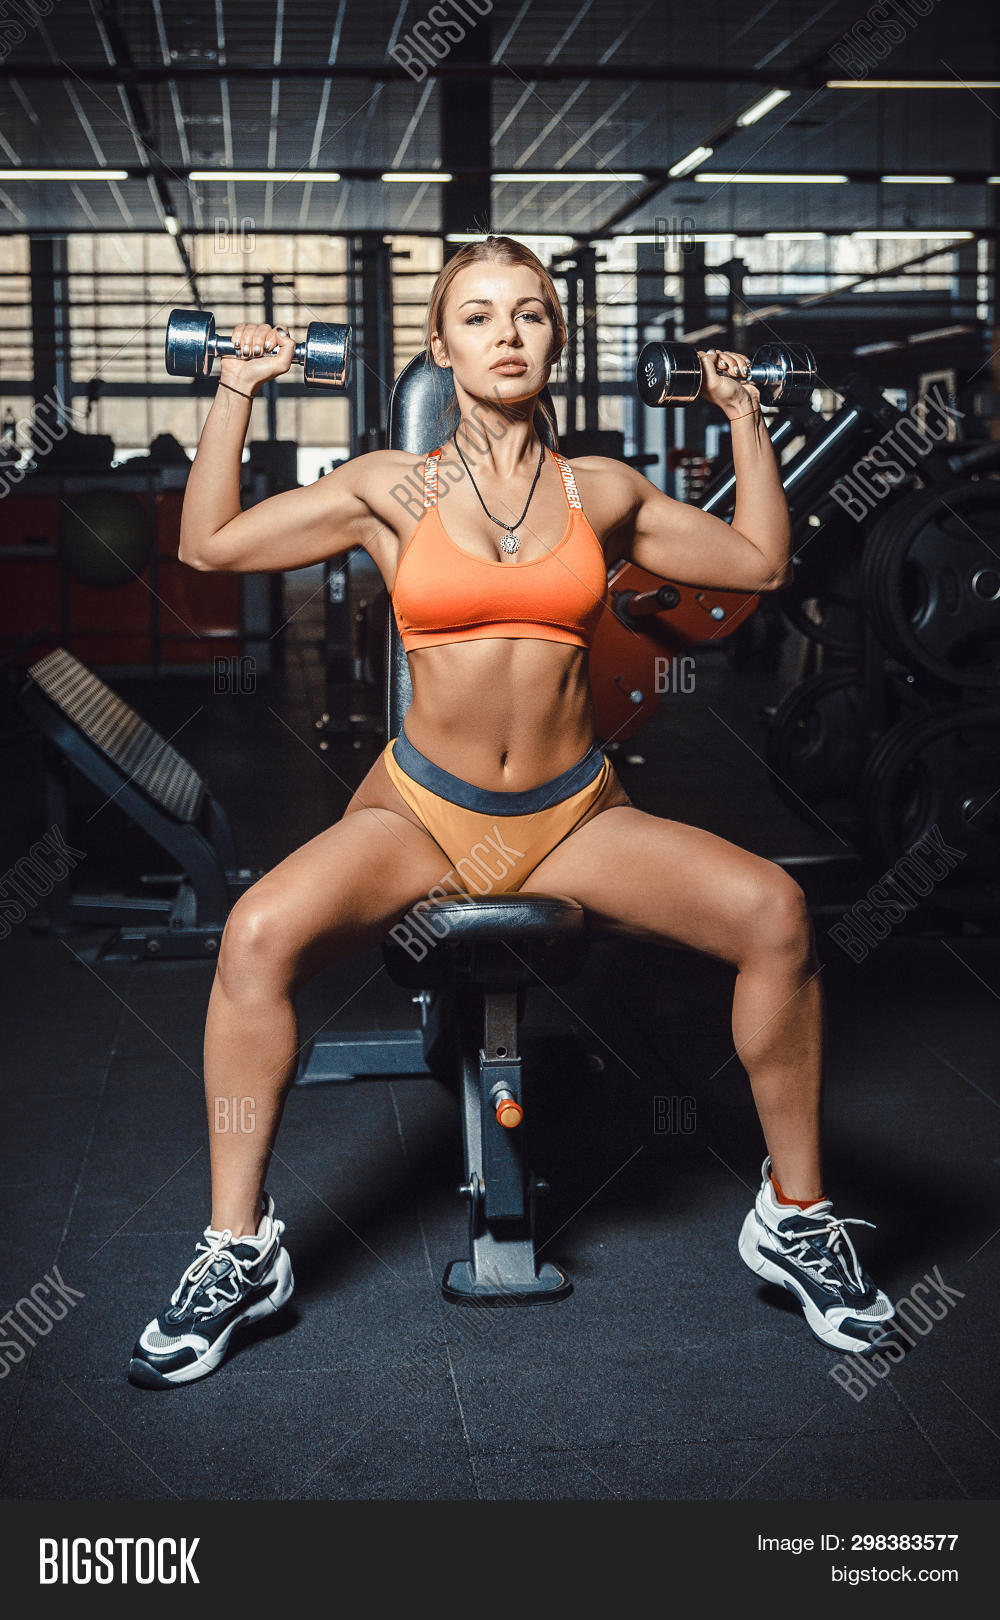 Girls in panties lifting weights Perfect Sexy Girl Image Photo Free Trial Bigstock